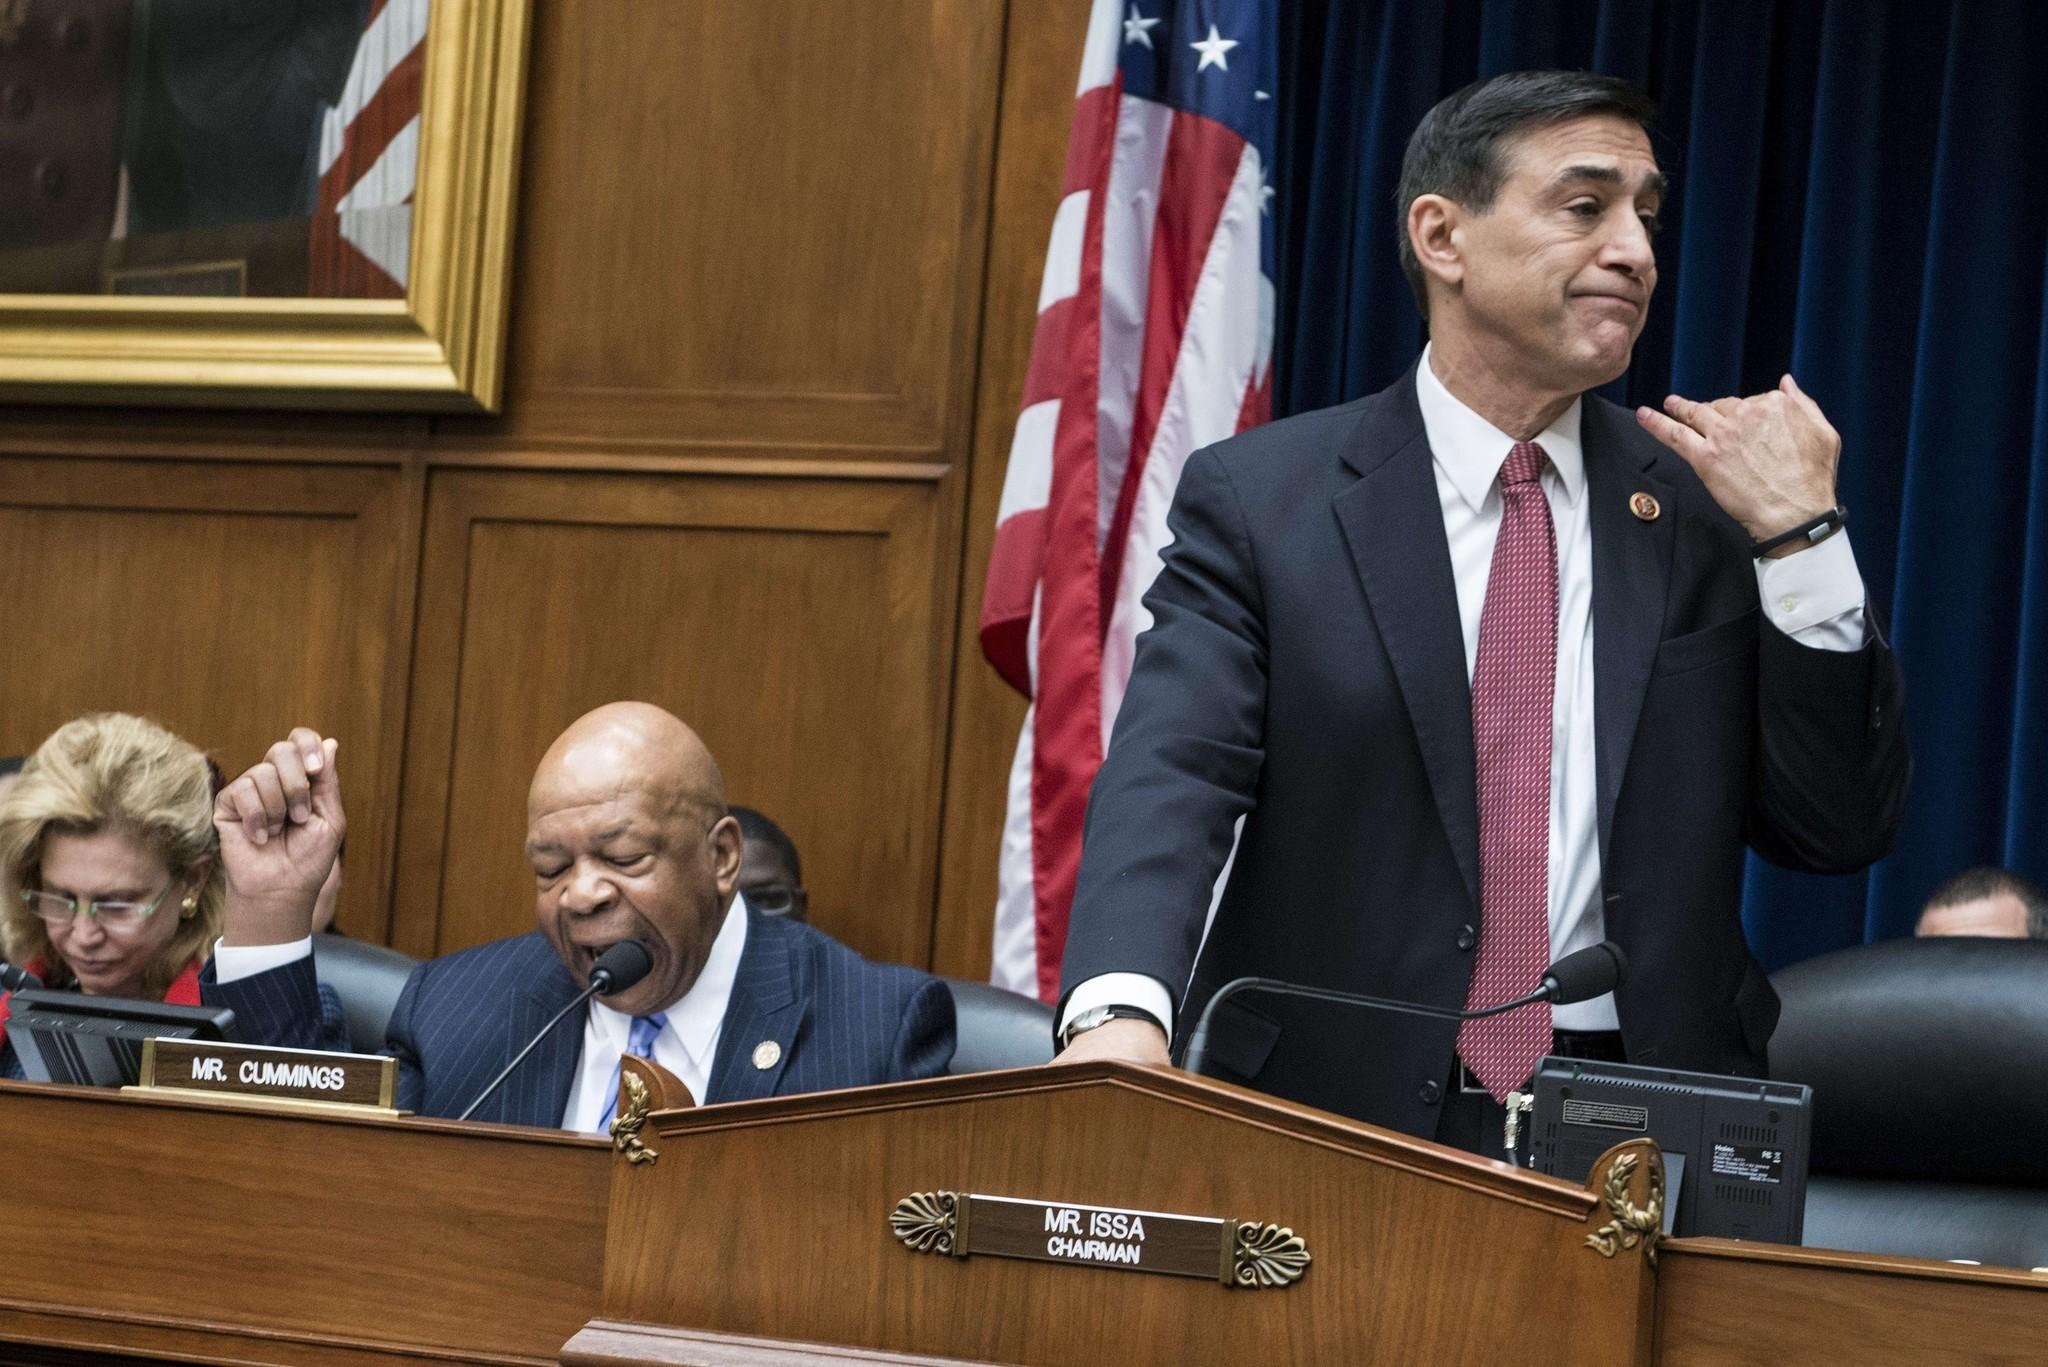 Committee chairman Rep. Darrell Issa (R-Calif.) (R) cuts ranking member Rep. Elijah Cummings (D-MD) off during a hearing of the House Oversight and Government Reform Committee on Capitol Hill March 5, 2014 in Washington, DC. Cummings was cut off after Issa only allowed his own questions of witness Lois Lerner, former director of the Tax Exempt and Government Entities Division at the Internal Revenue Service, during the hearing to see if the Internal Revenue Service has been targeting US citizens based on their political beliefs.